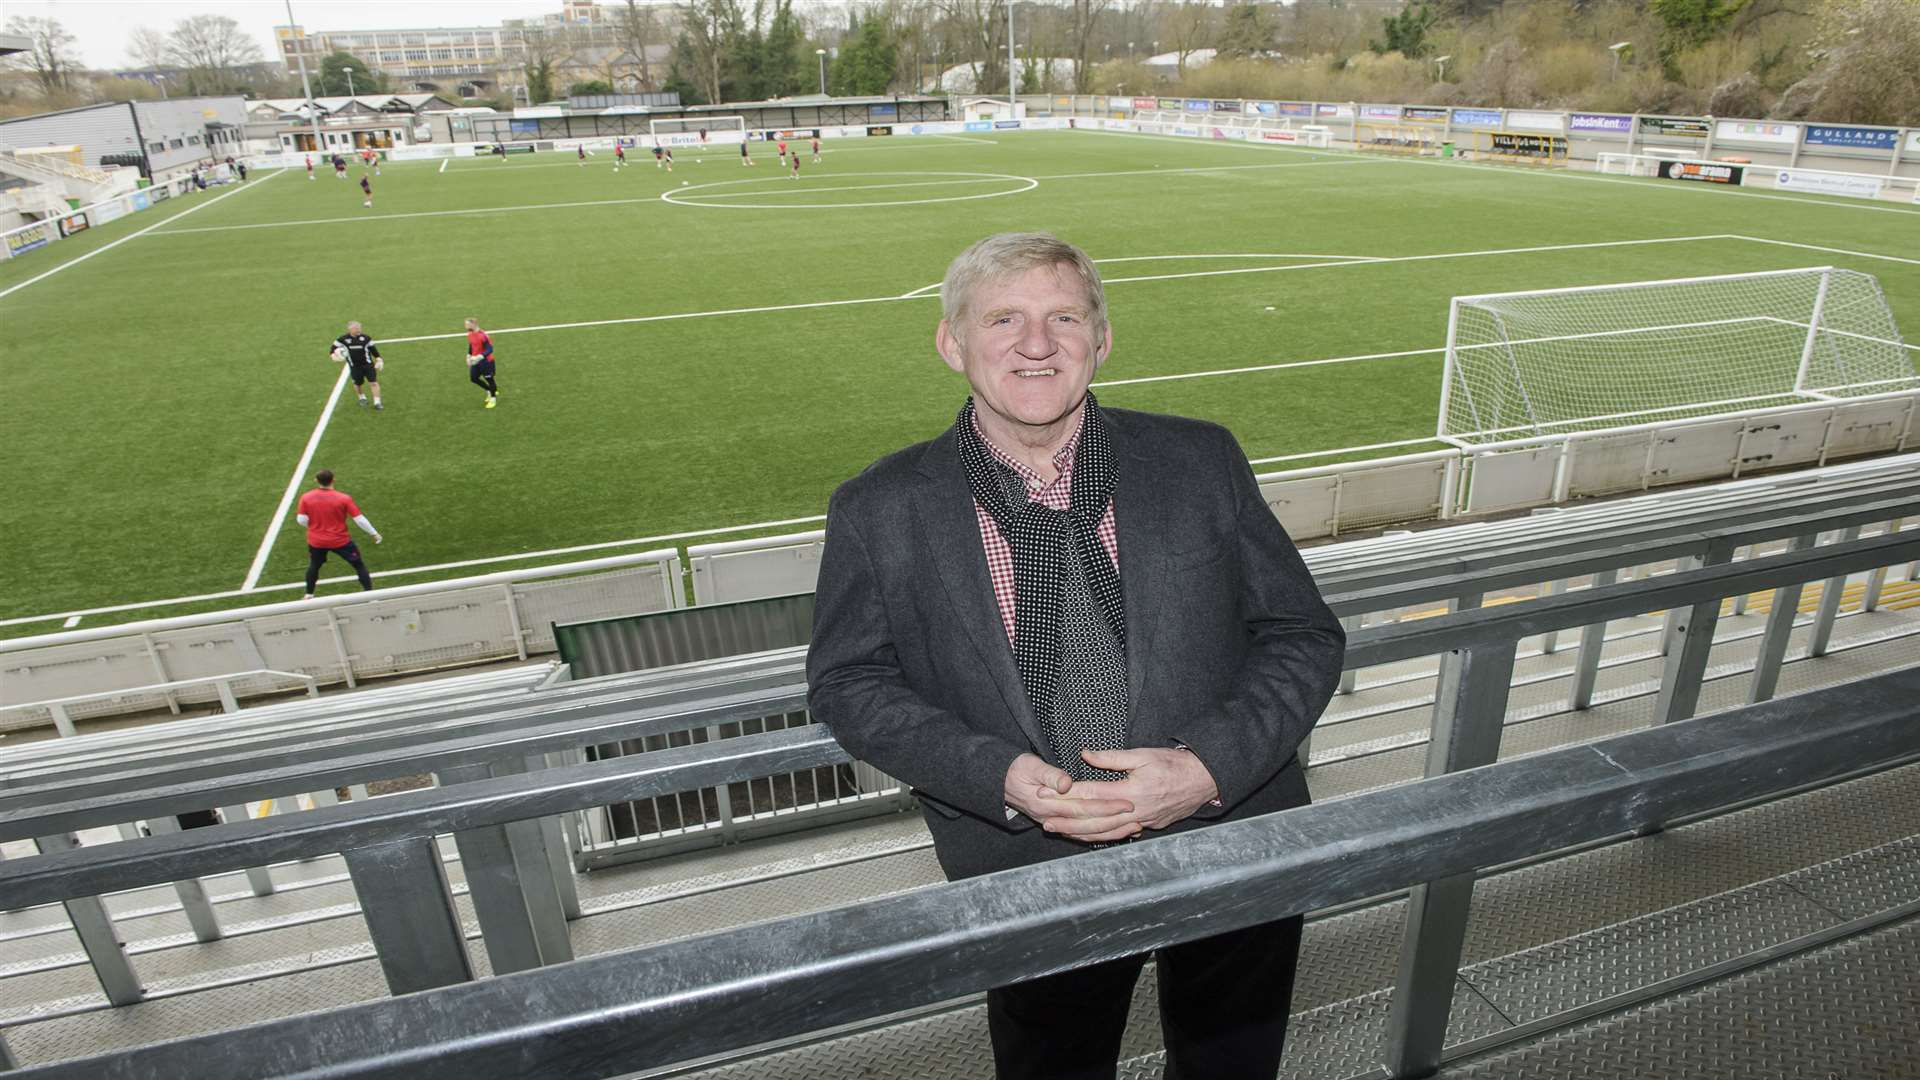 The new stand at the Gallagher offers great views Picture: Andy Payton